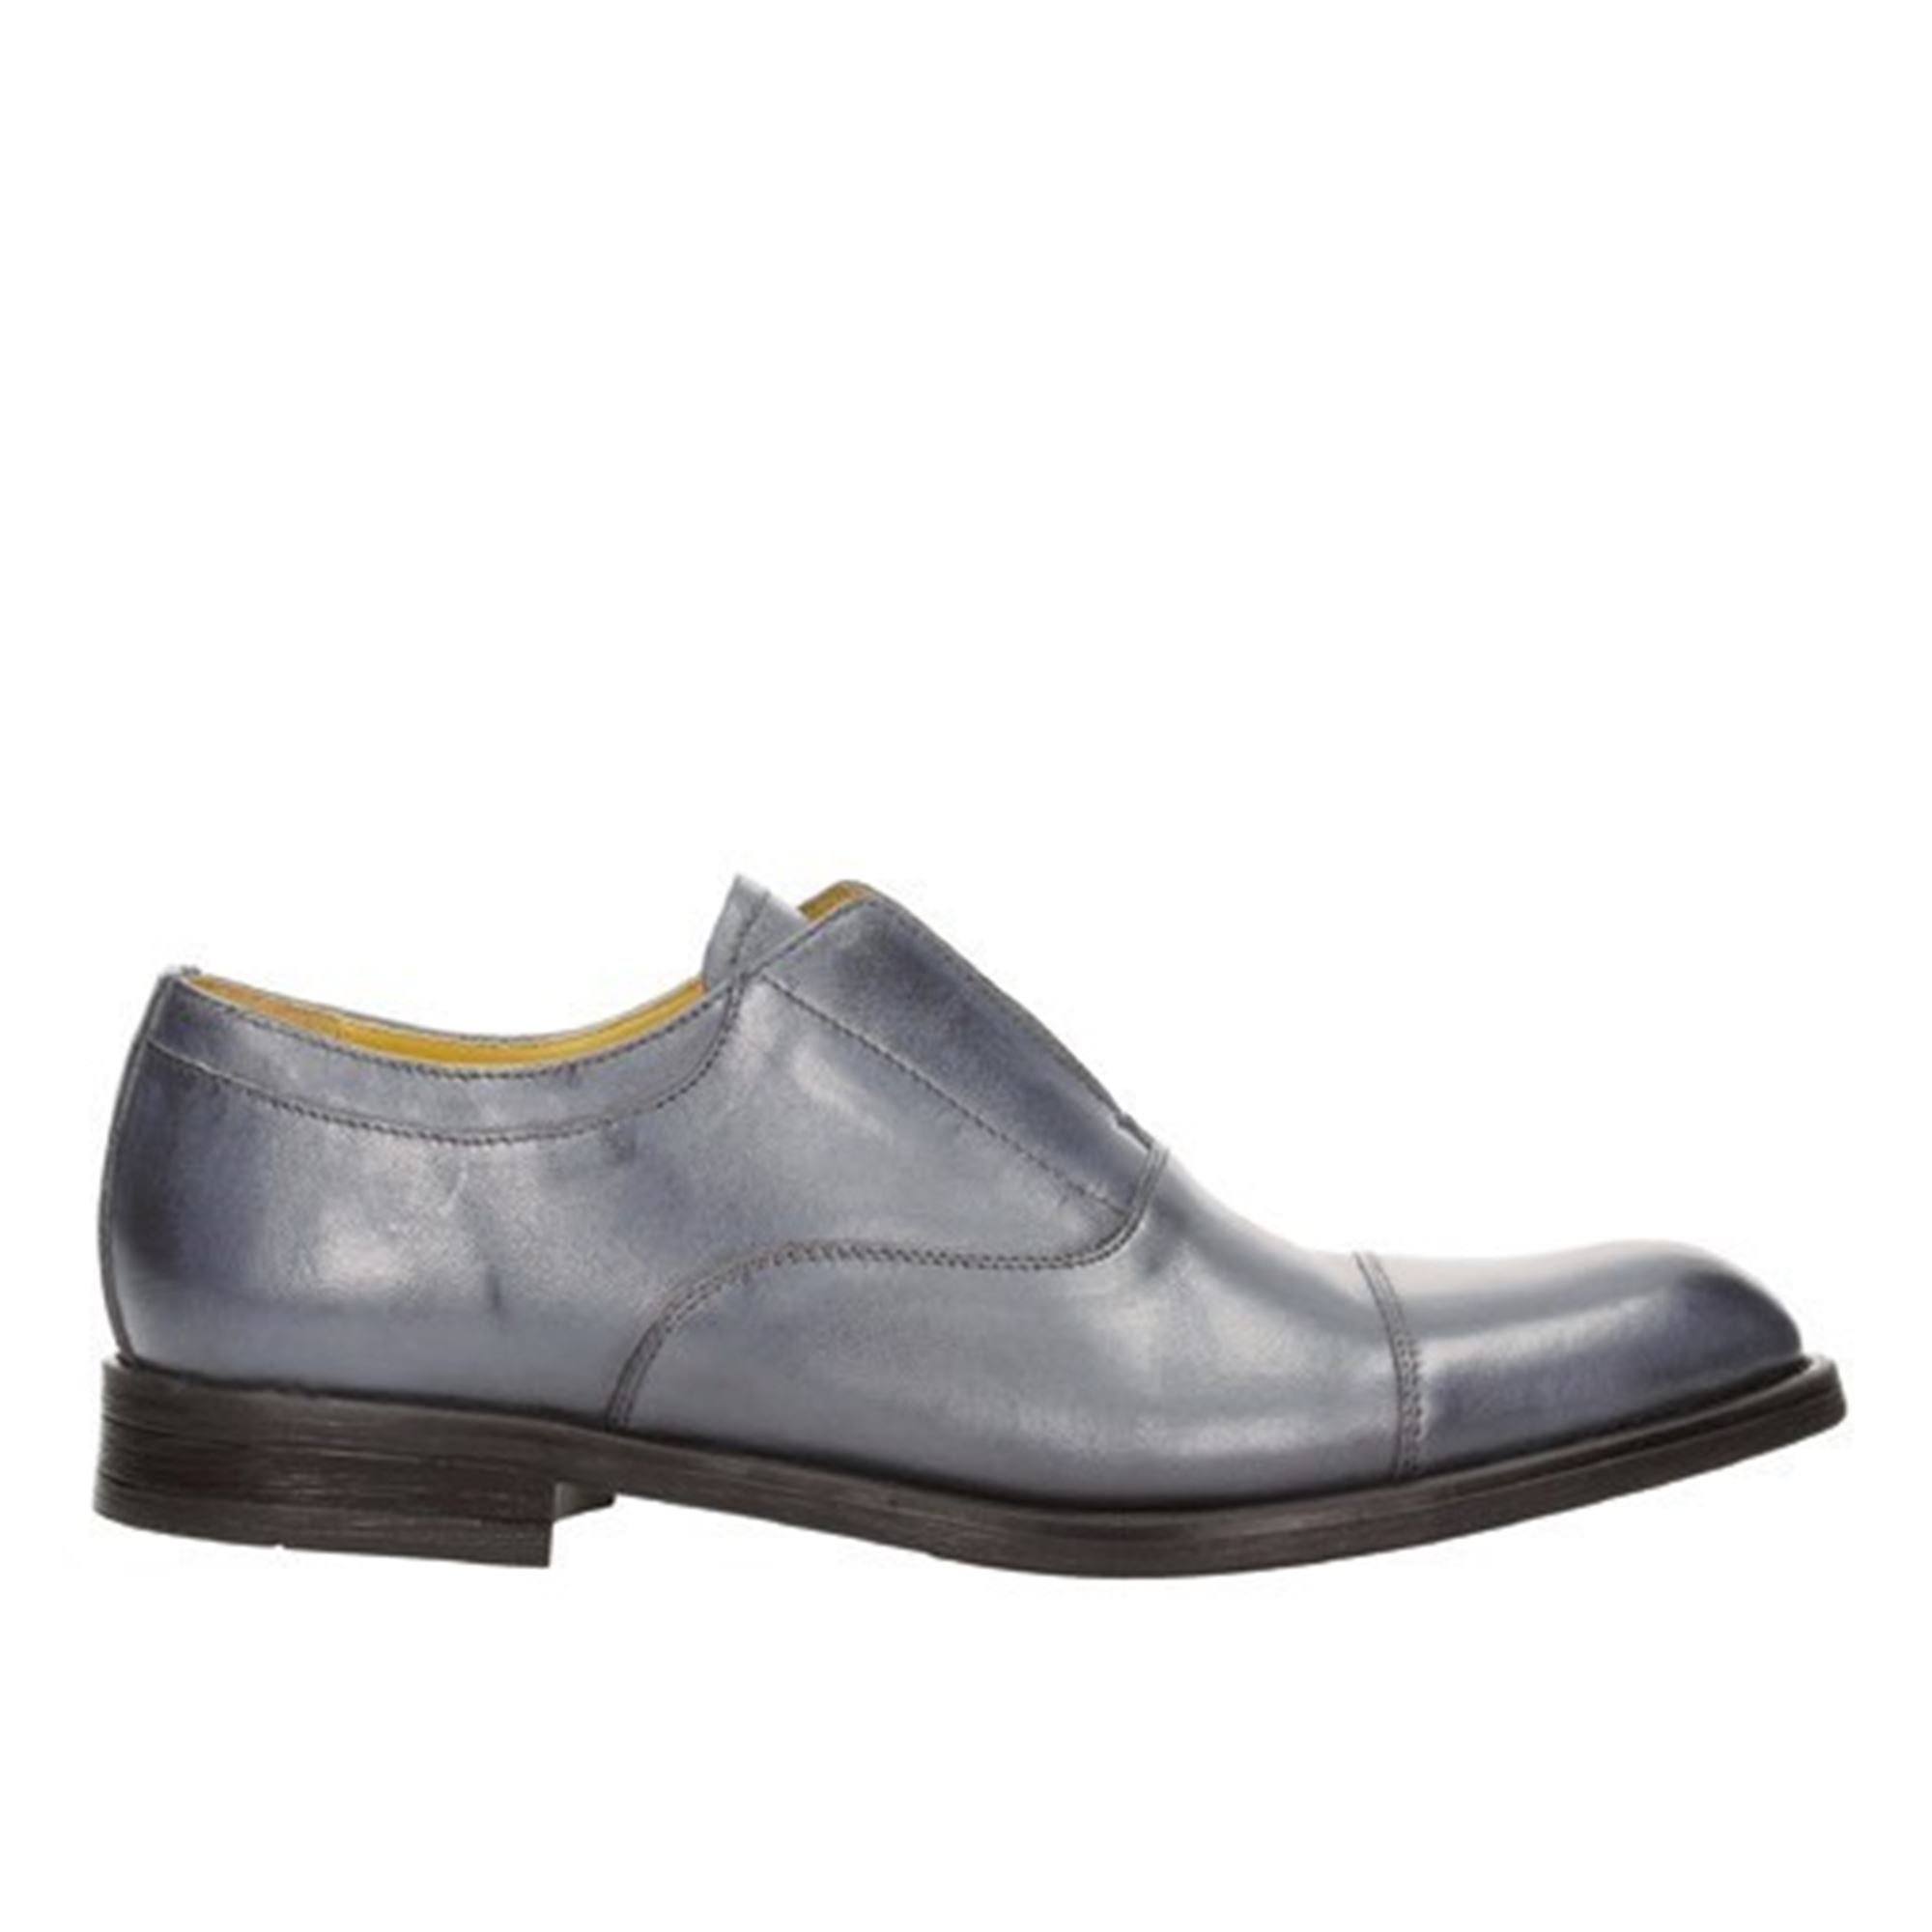 Tata Italia Shoes Man Derby Navy 8-005-39/E19